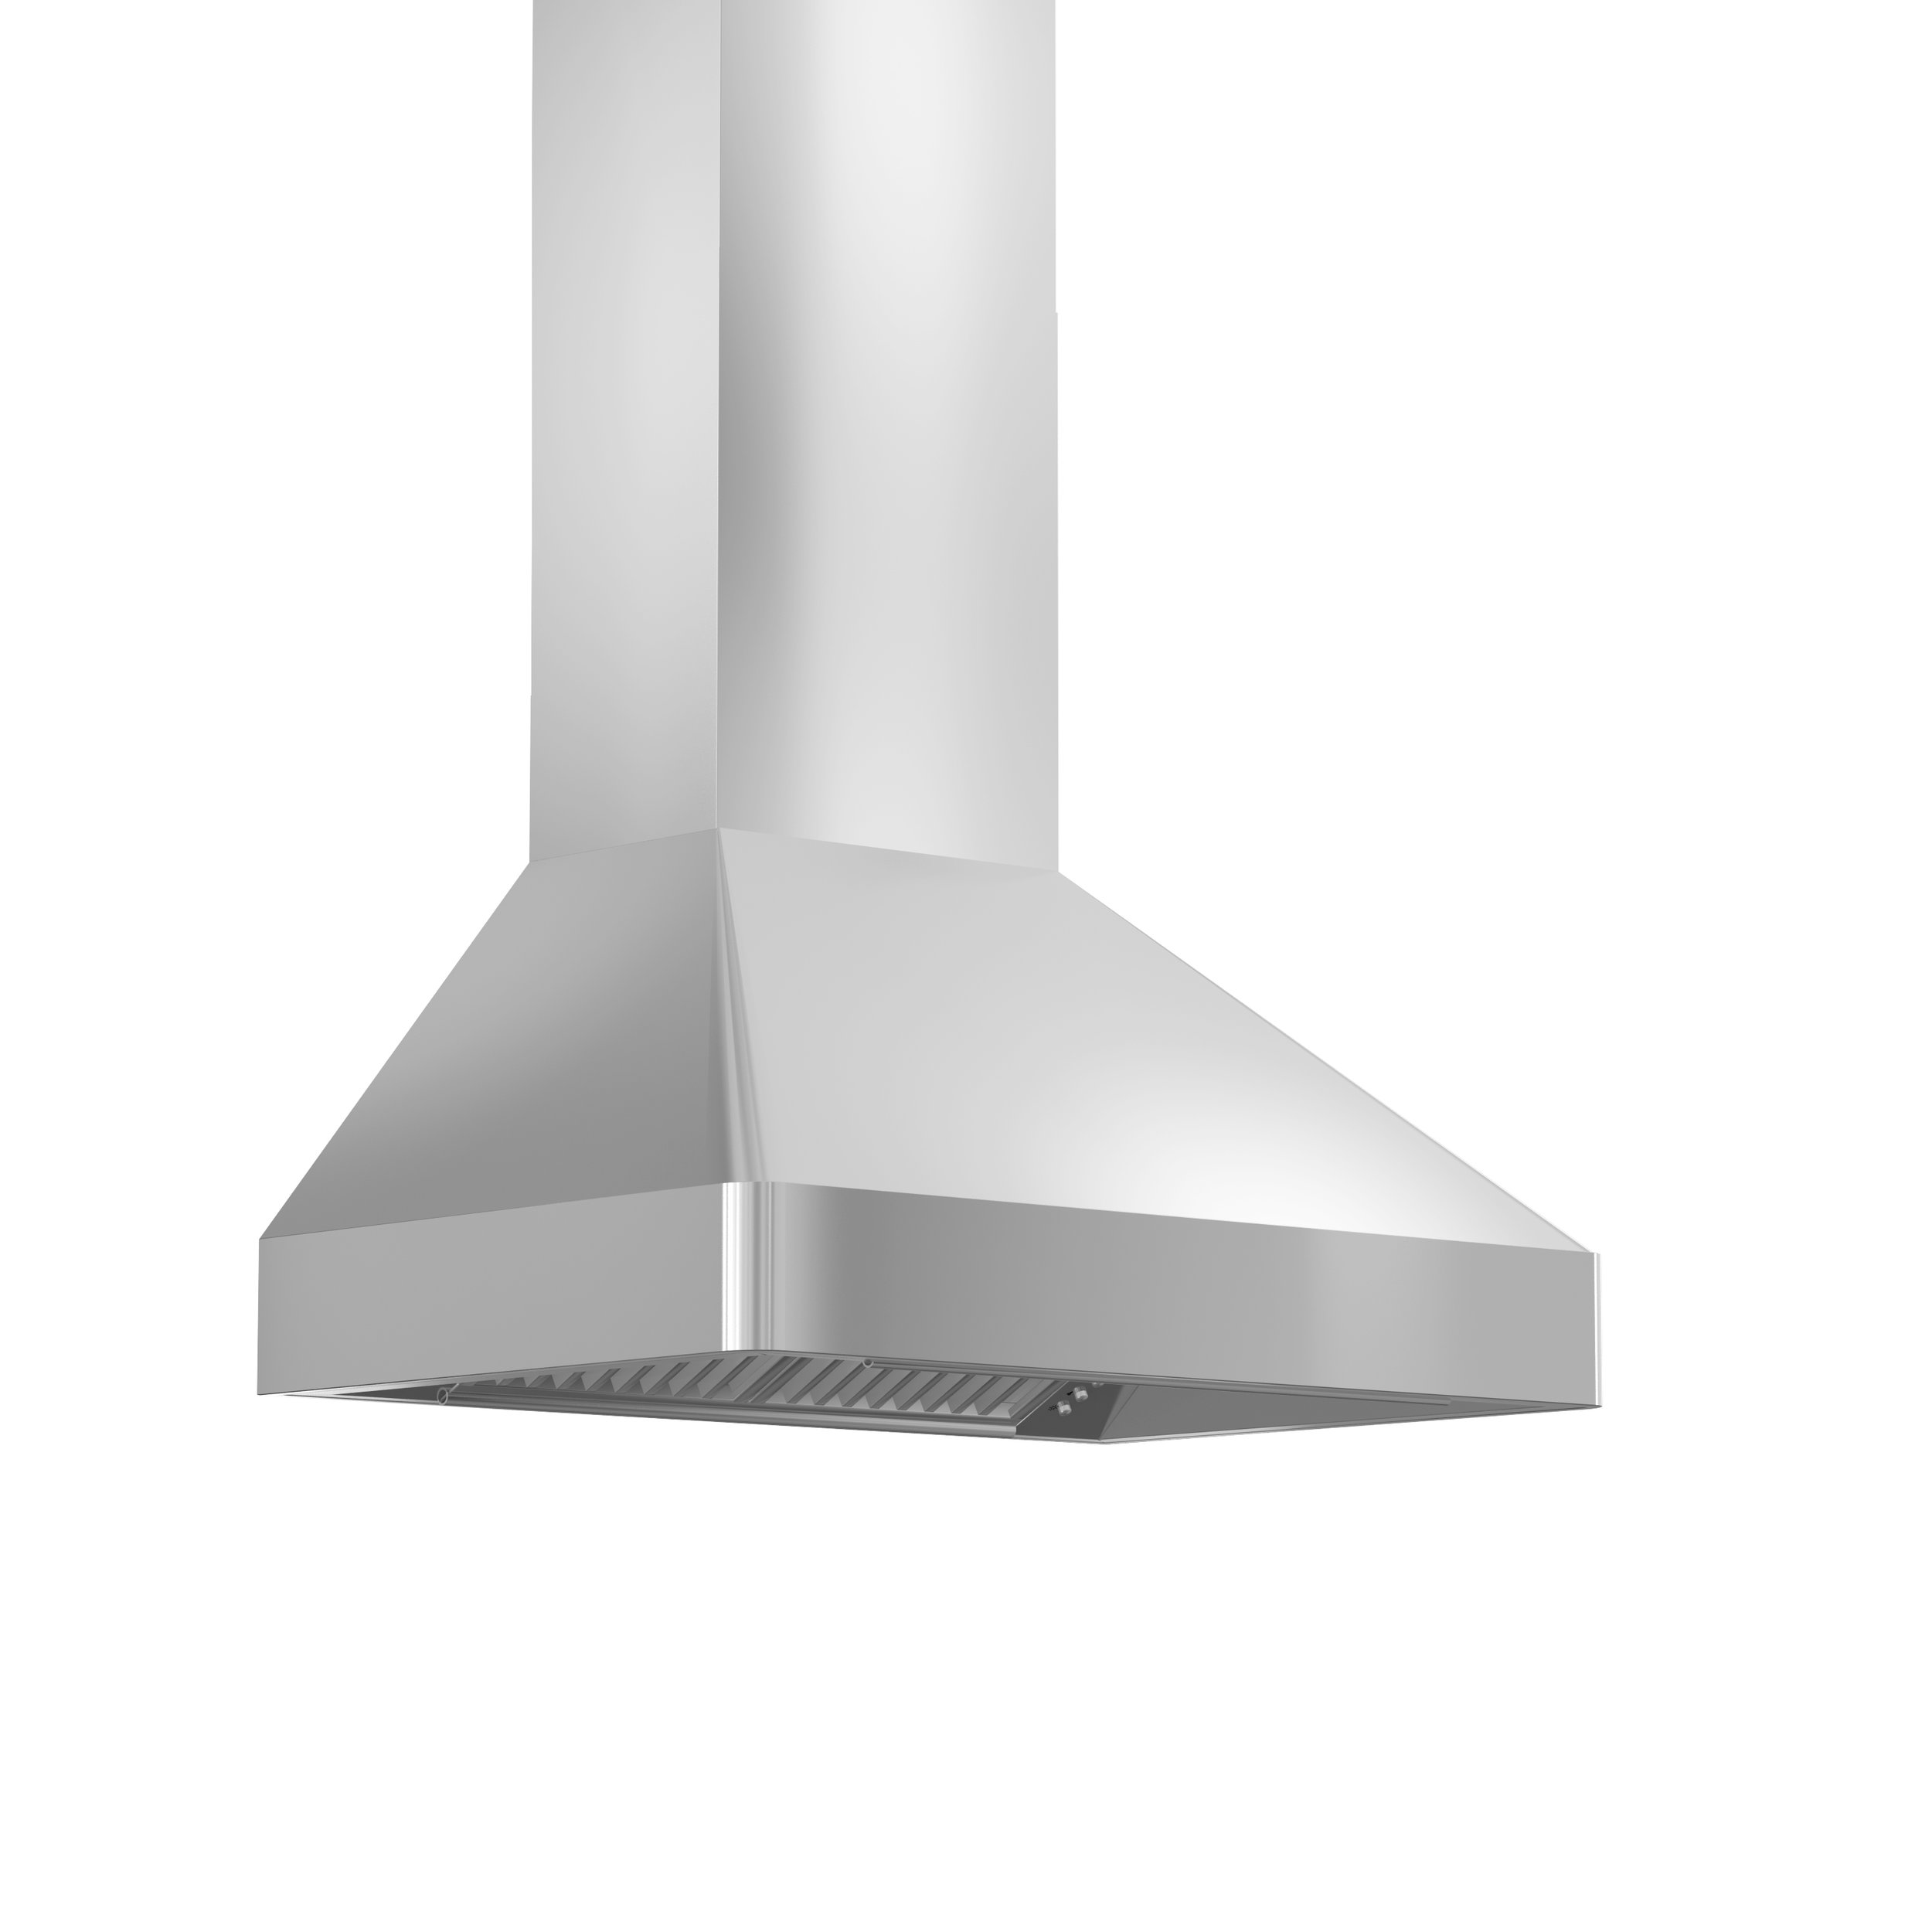 zline-stainless-steel-wall-mounted-range-hood-9597-main.jpg